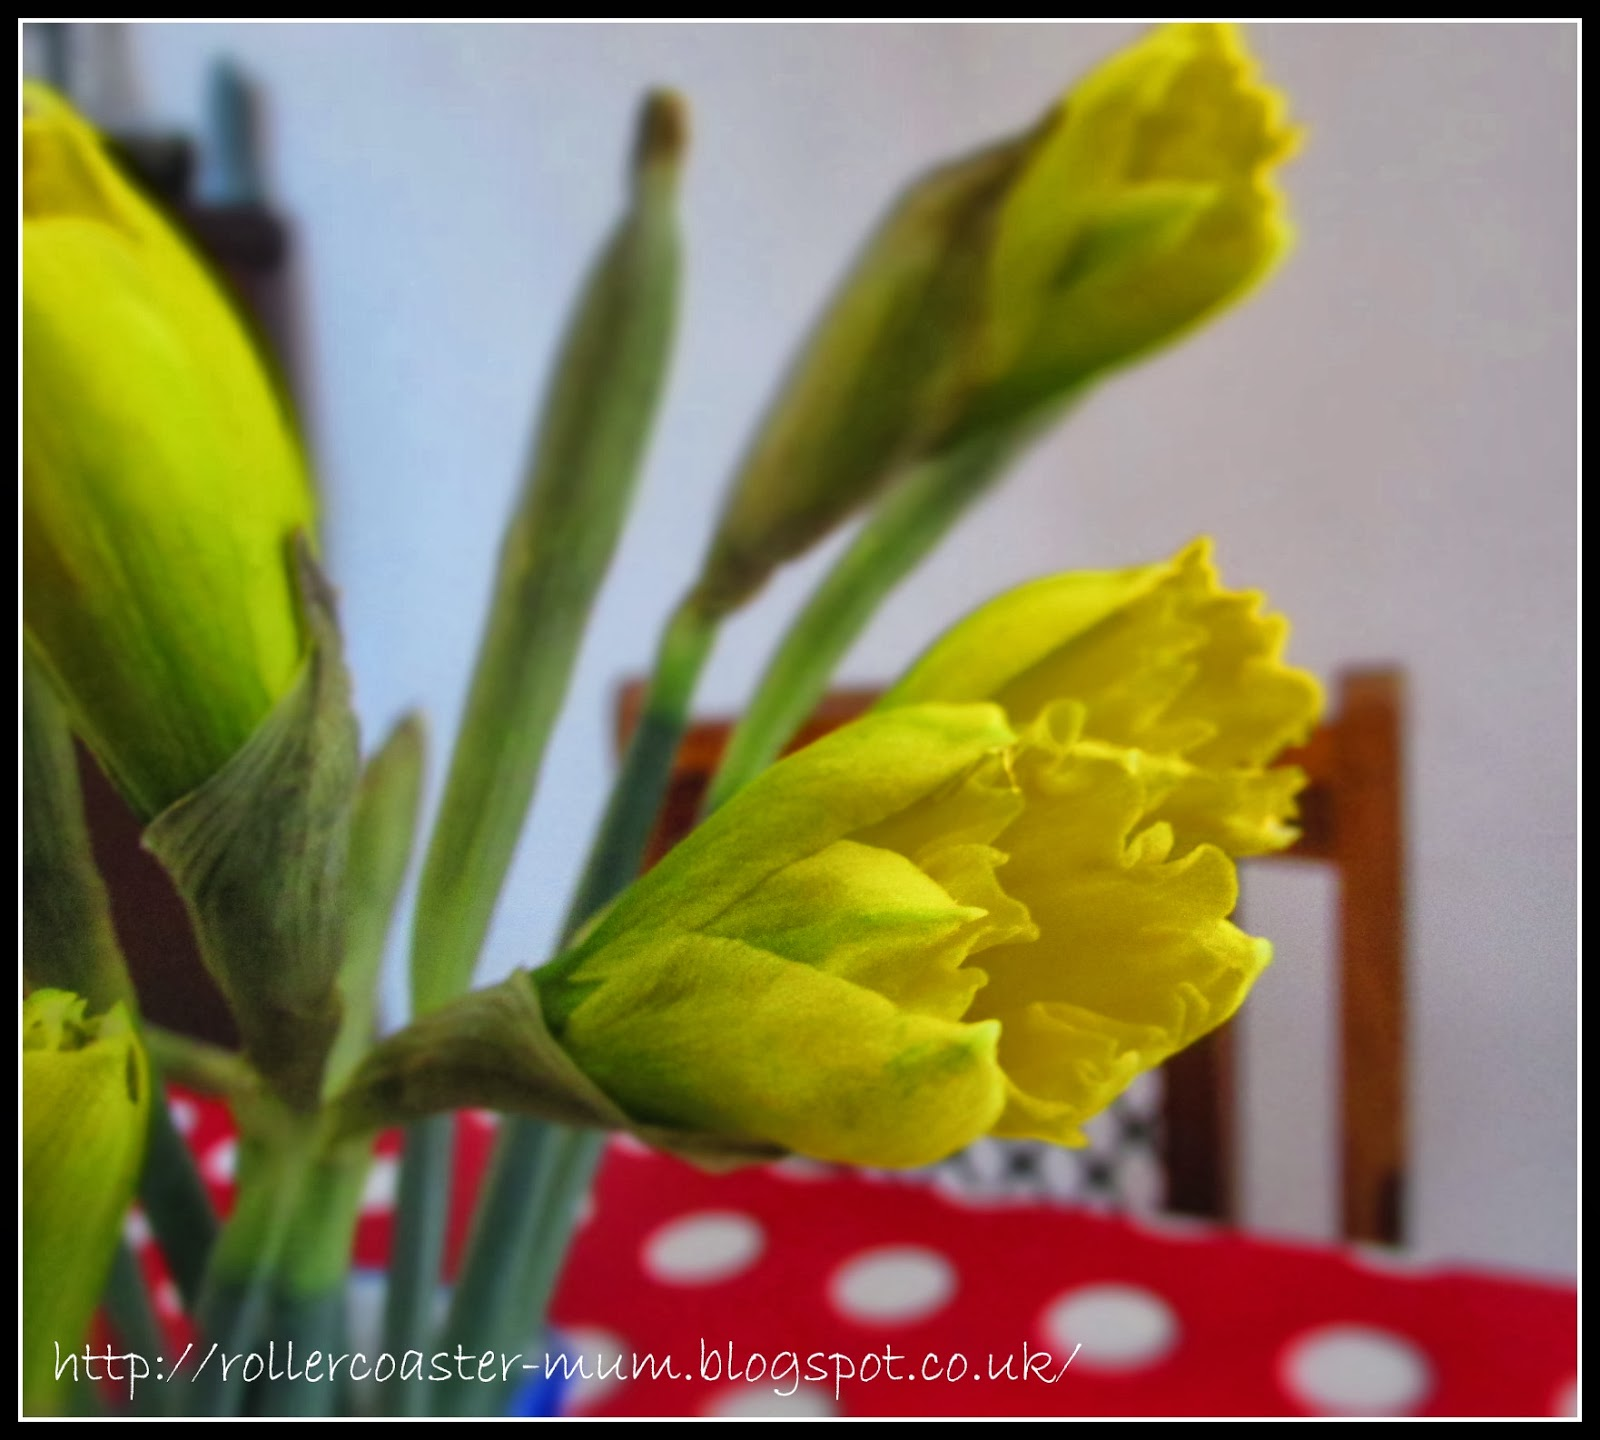 The first yellow daffodils